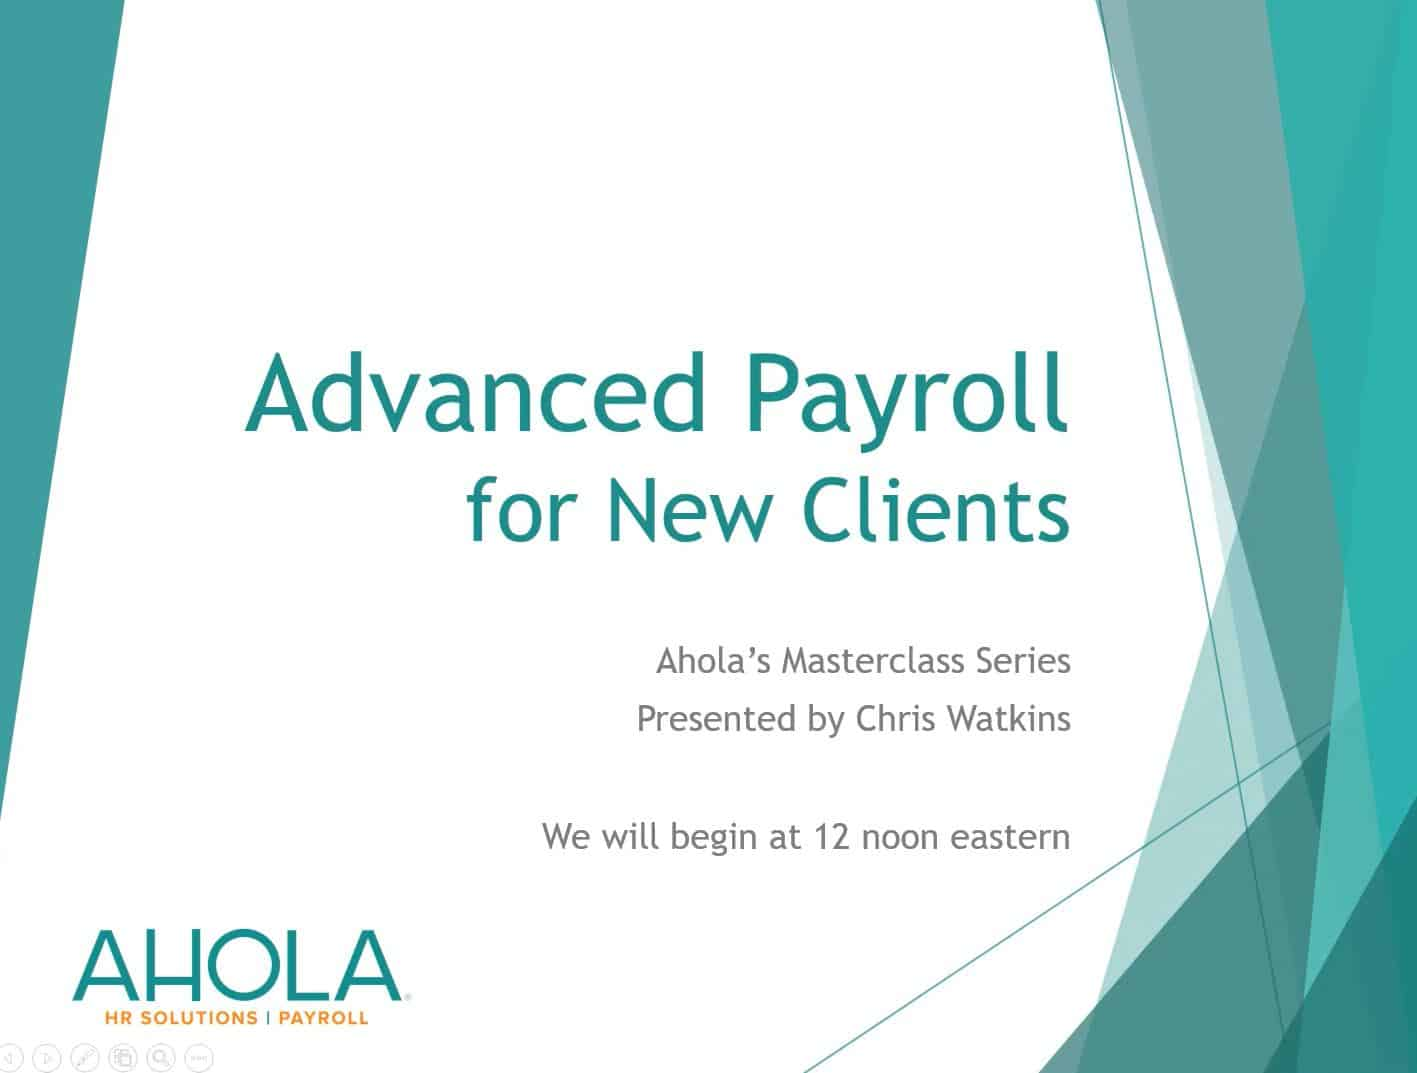 Advanced Payroll for New Clients